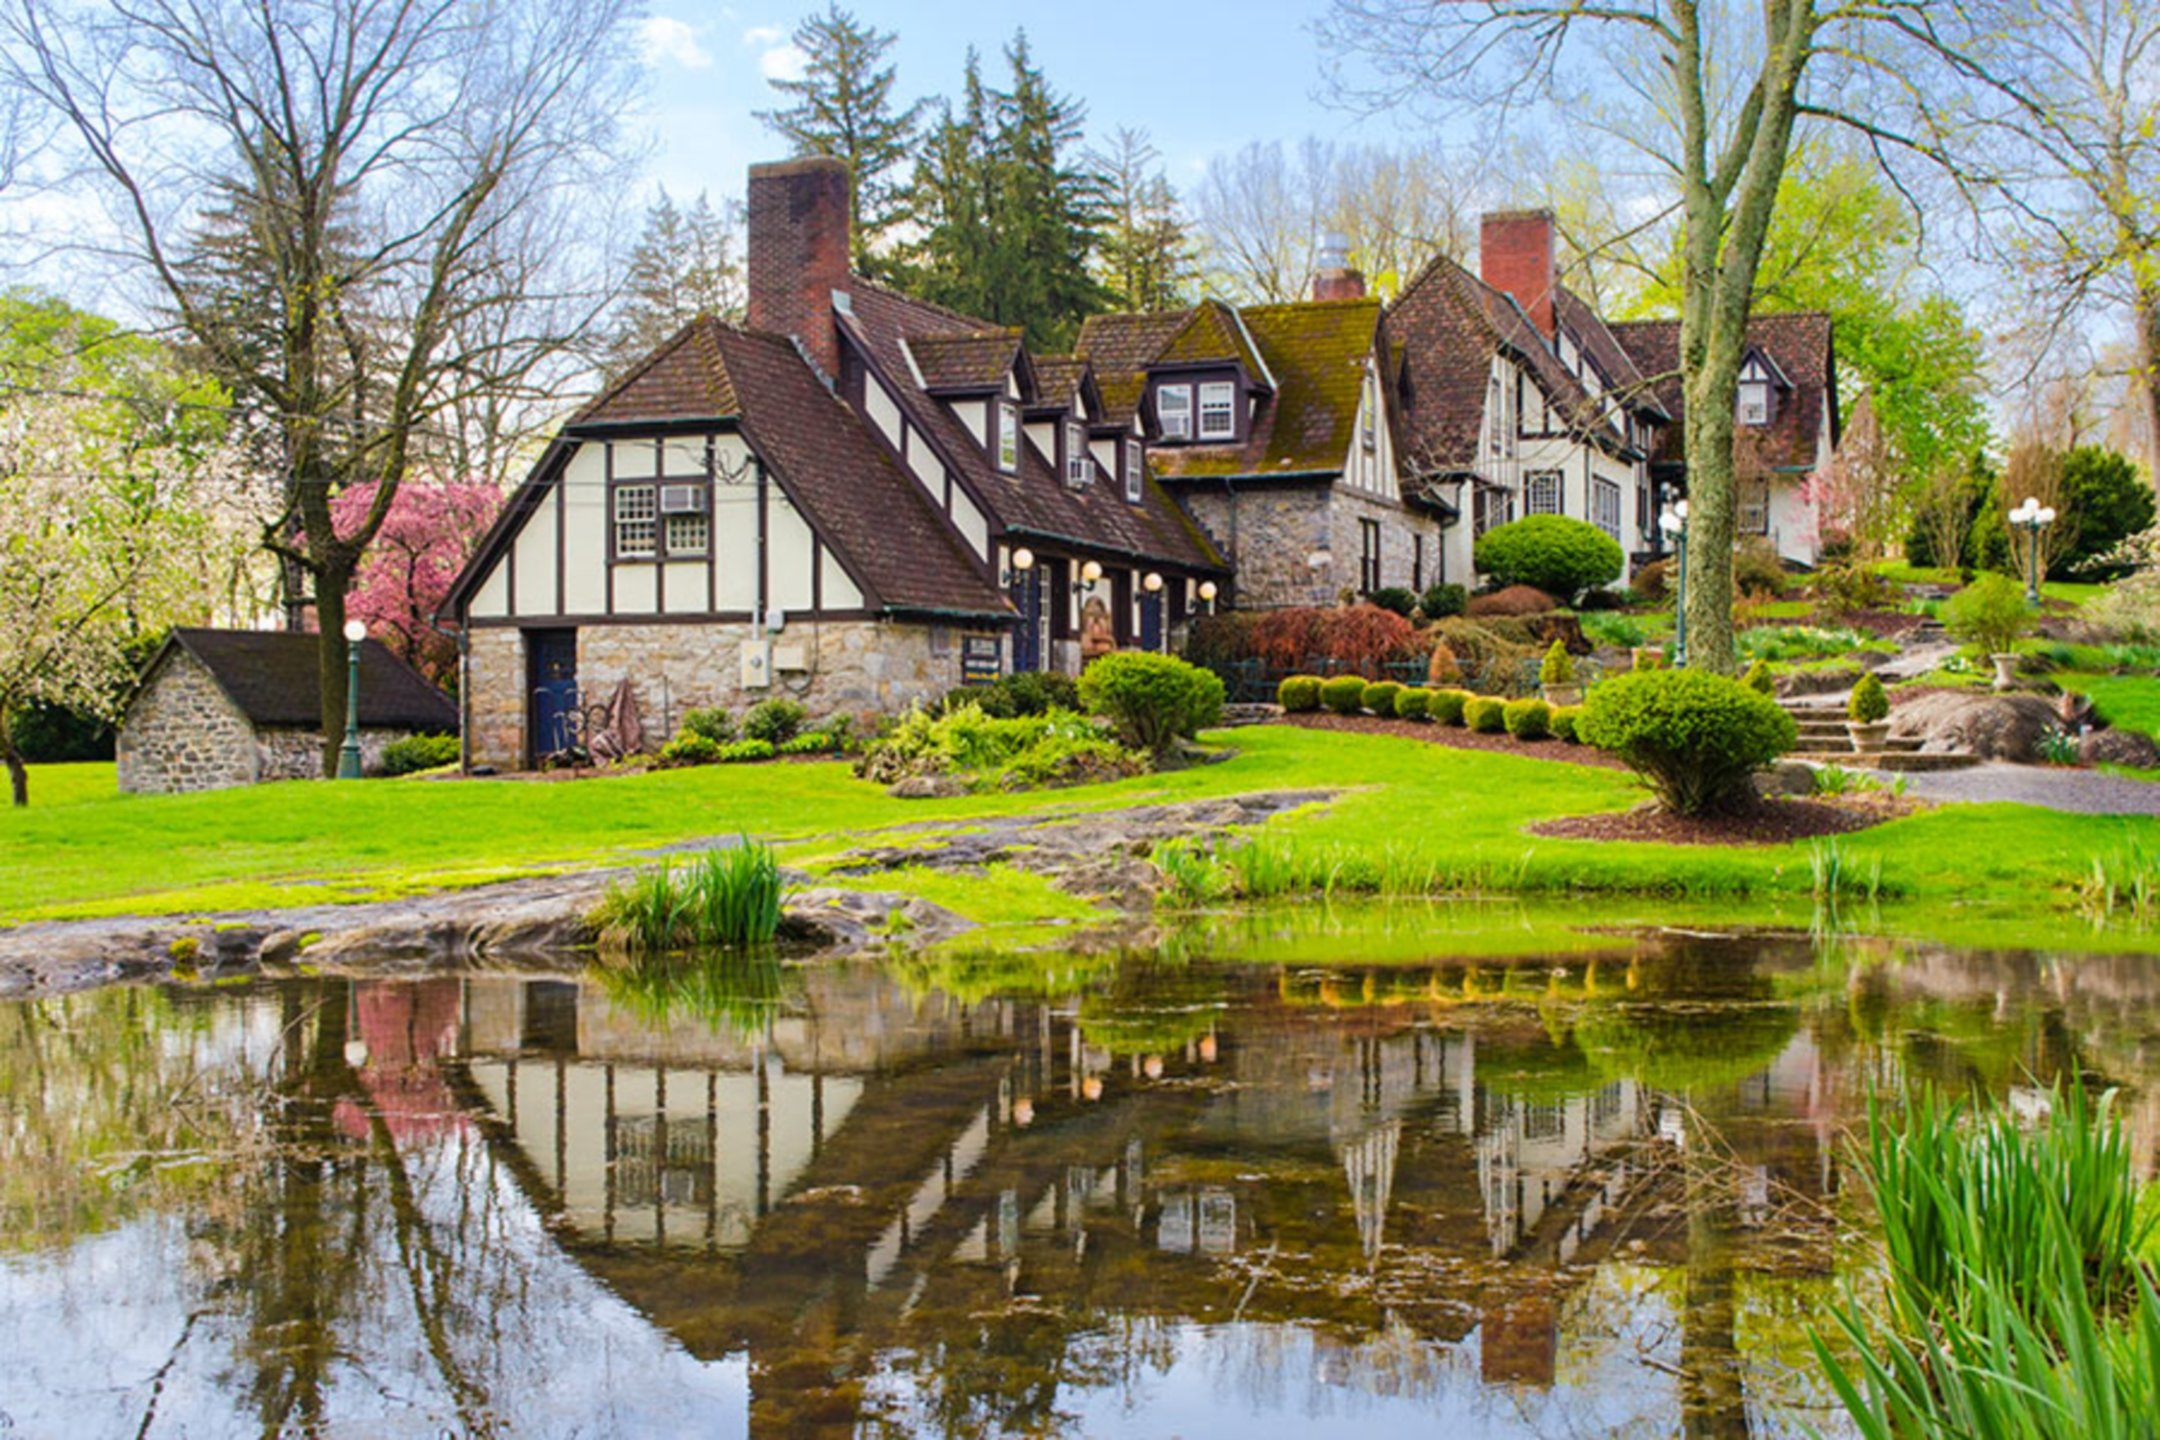 A house with a pond in a garden at Hillbrook Inn.